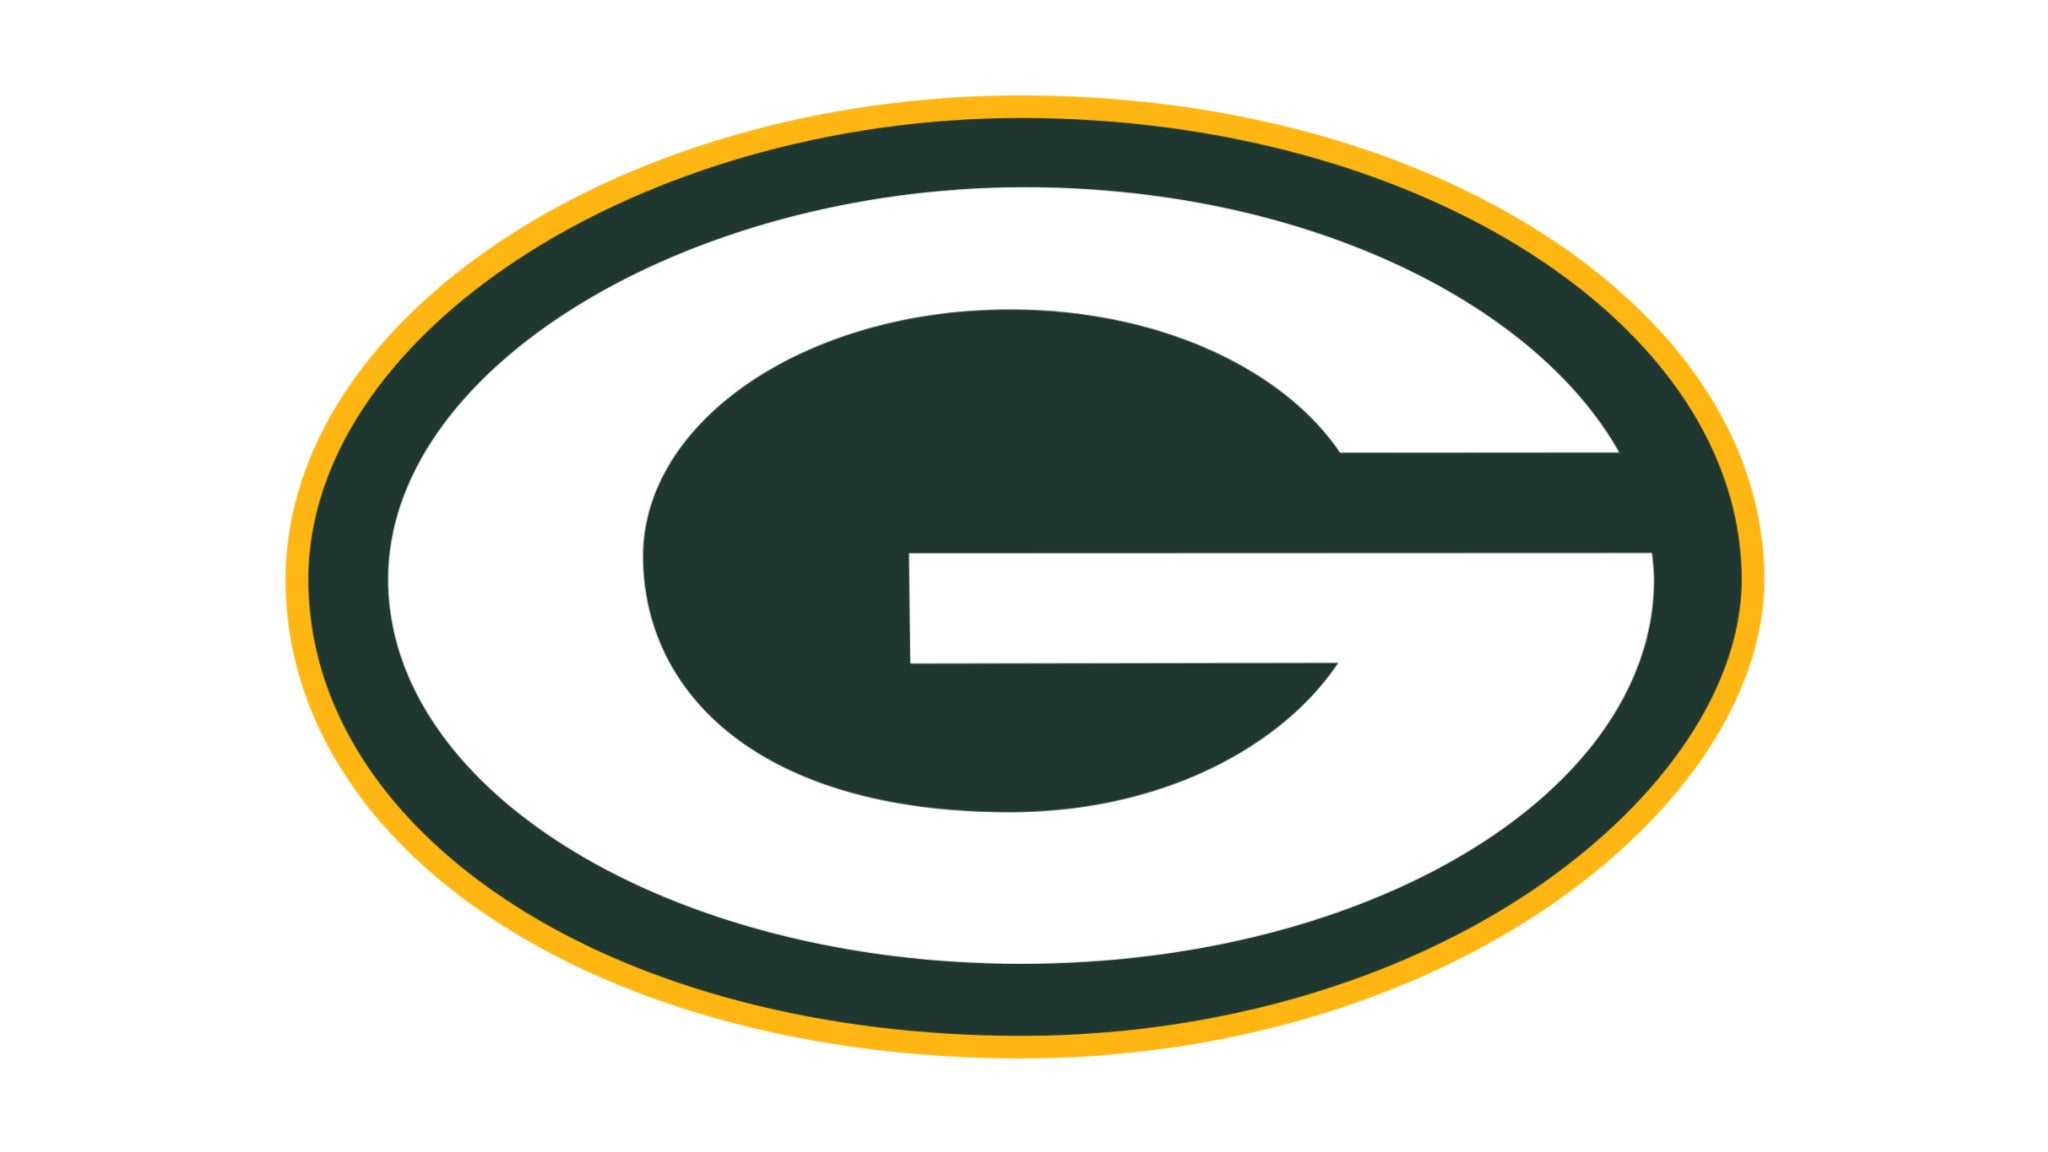 Green Bay Packers vs. Minnesota Vikings at Lambeau Field